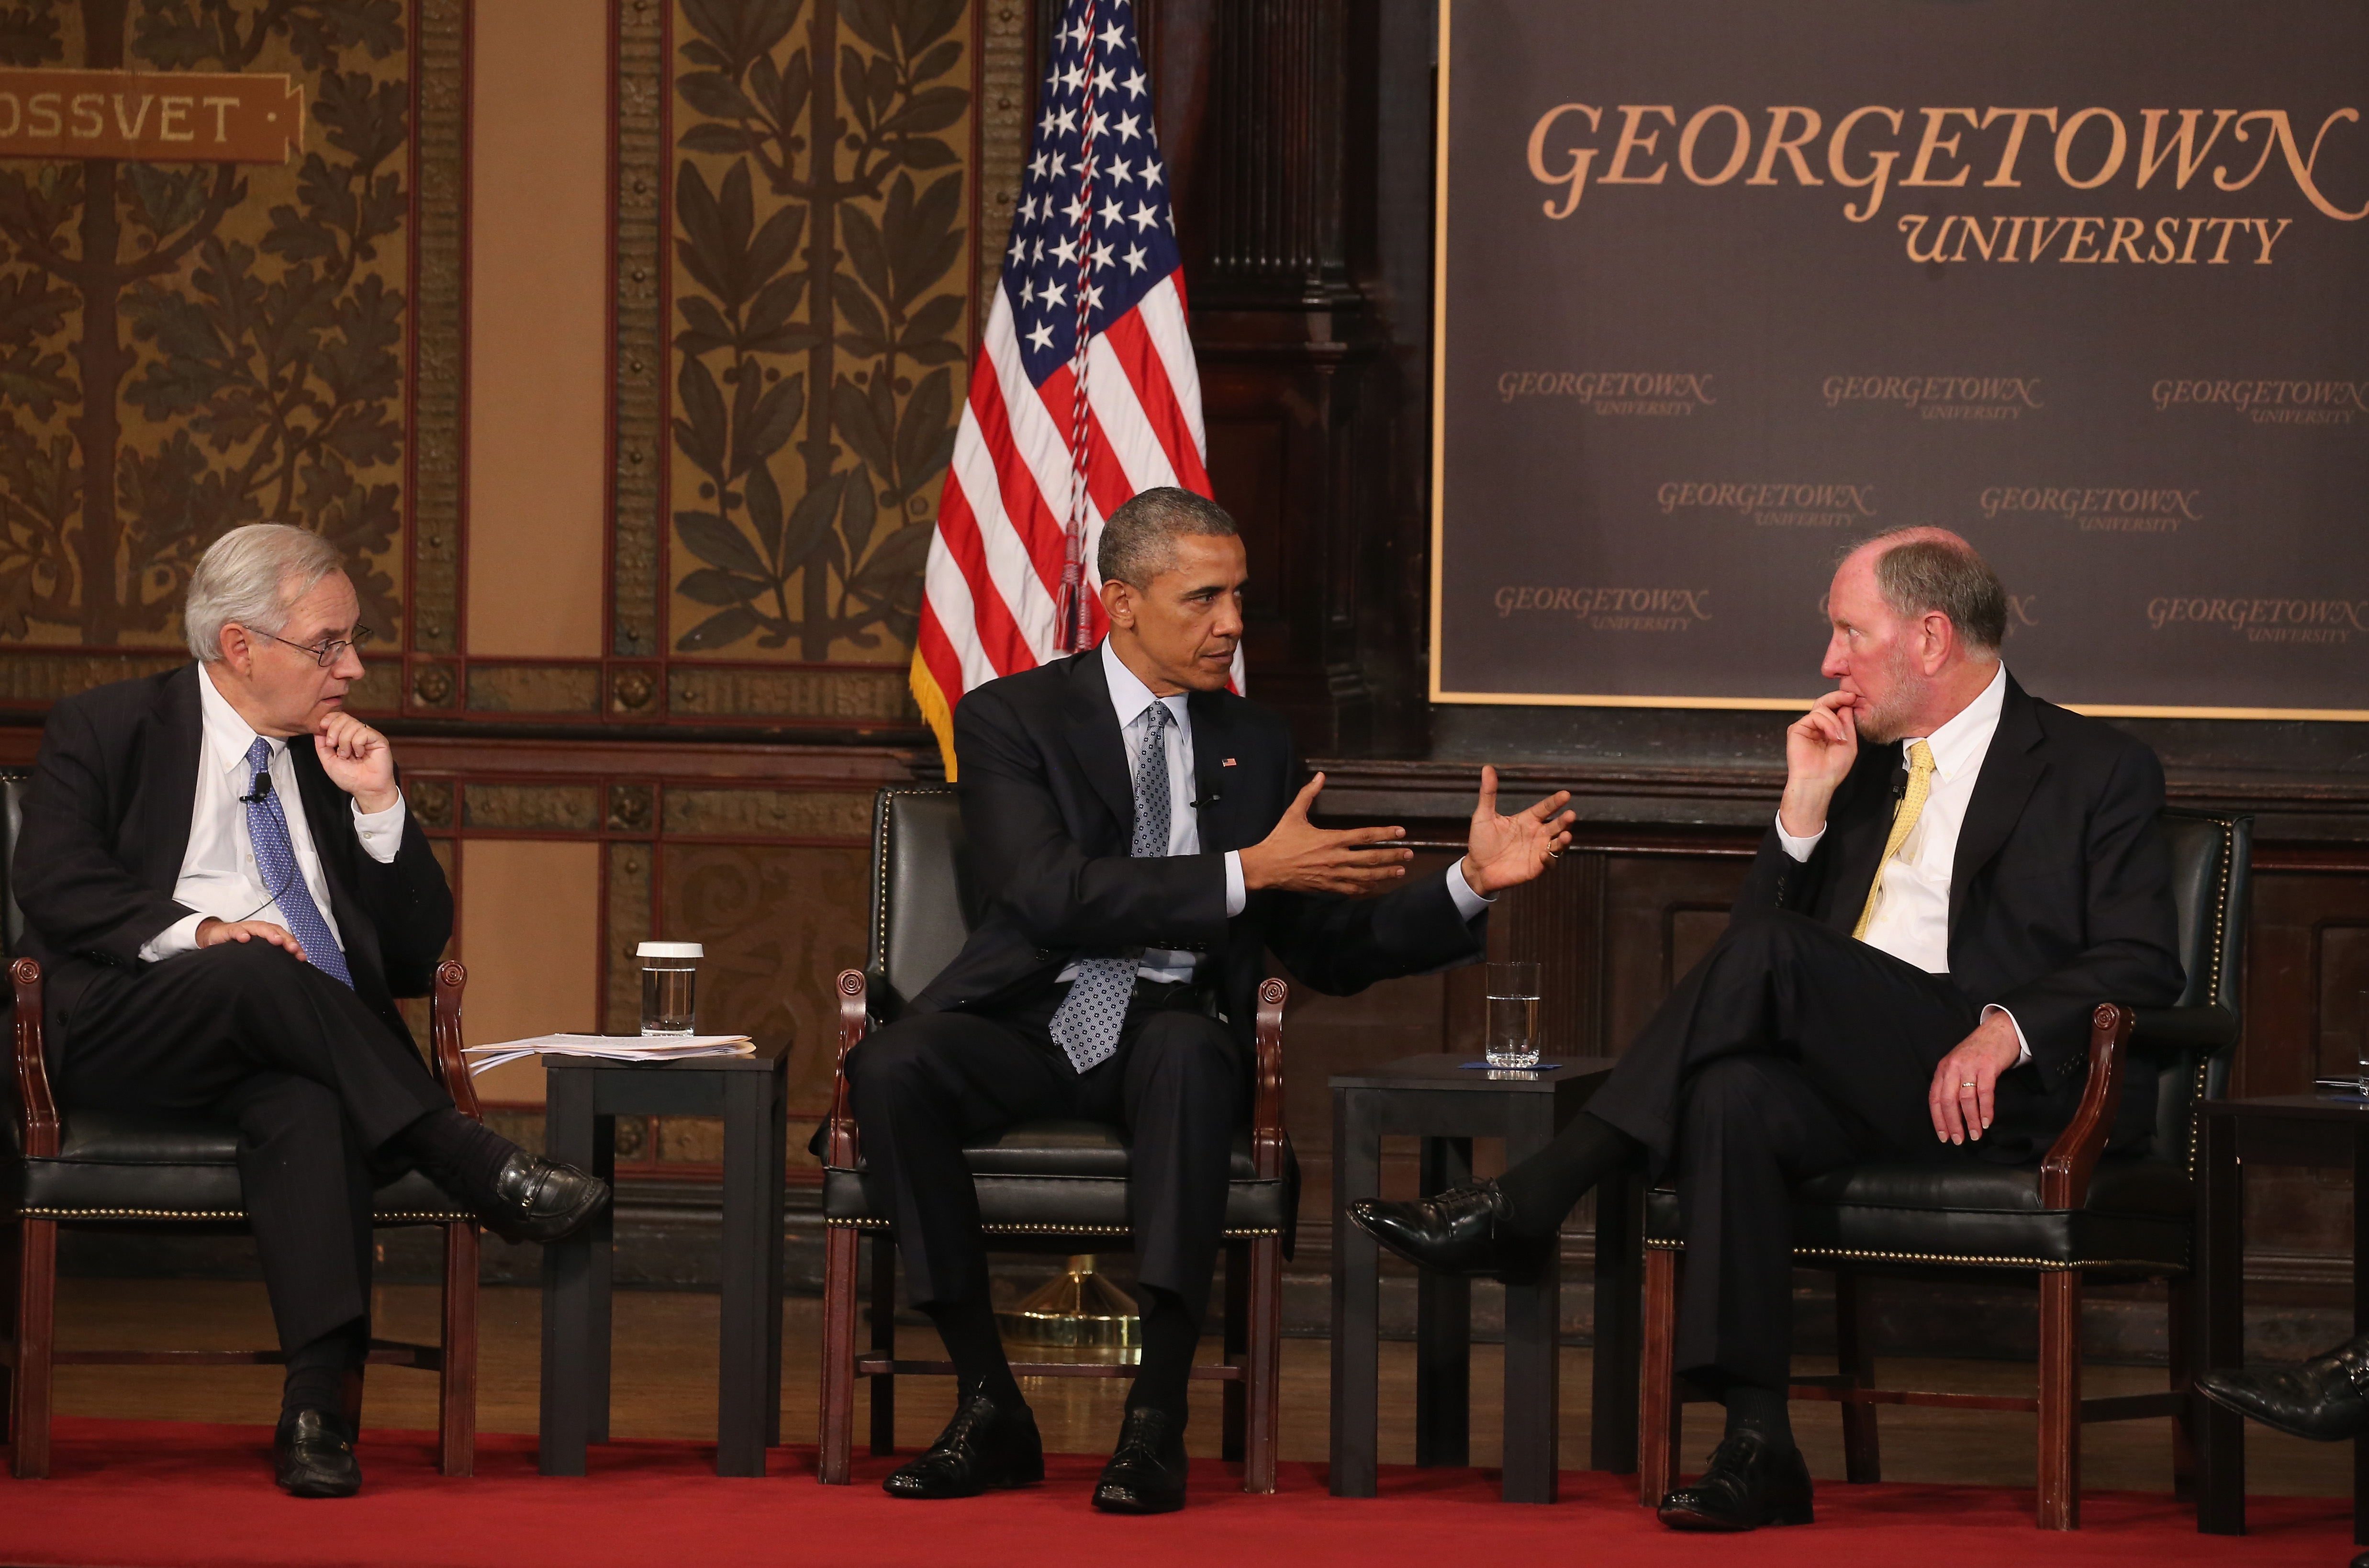 President Barack Obama participates in a discussion on poverty with moderator E.J. Dionne, Jr. and Robert Putman Professor at Harvard University, at Georgetown University May 12, 2015 in Washington, DC.